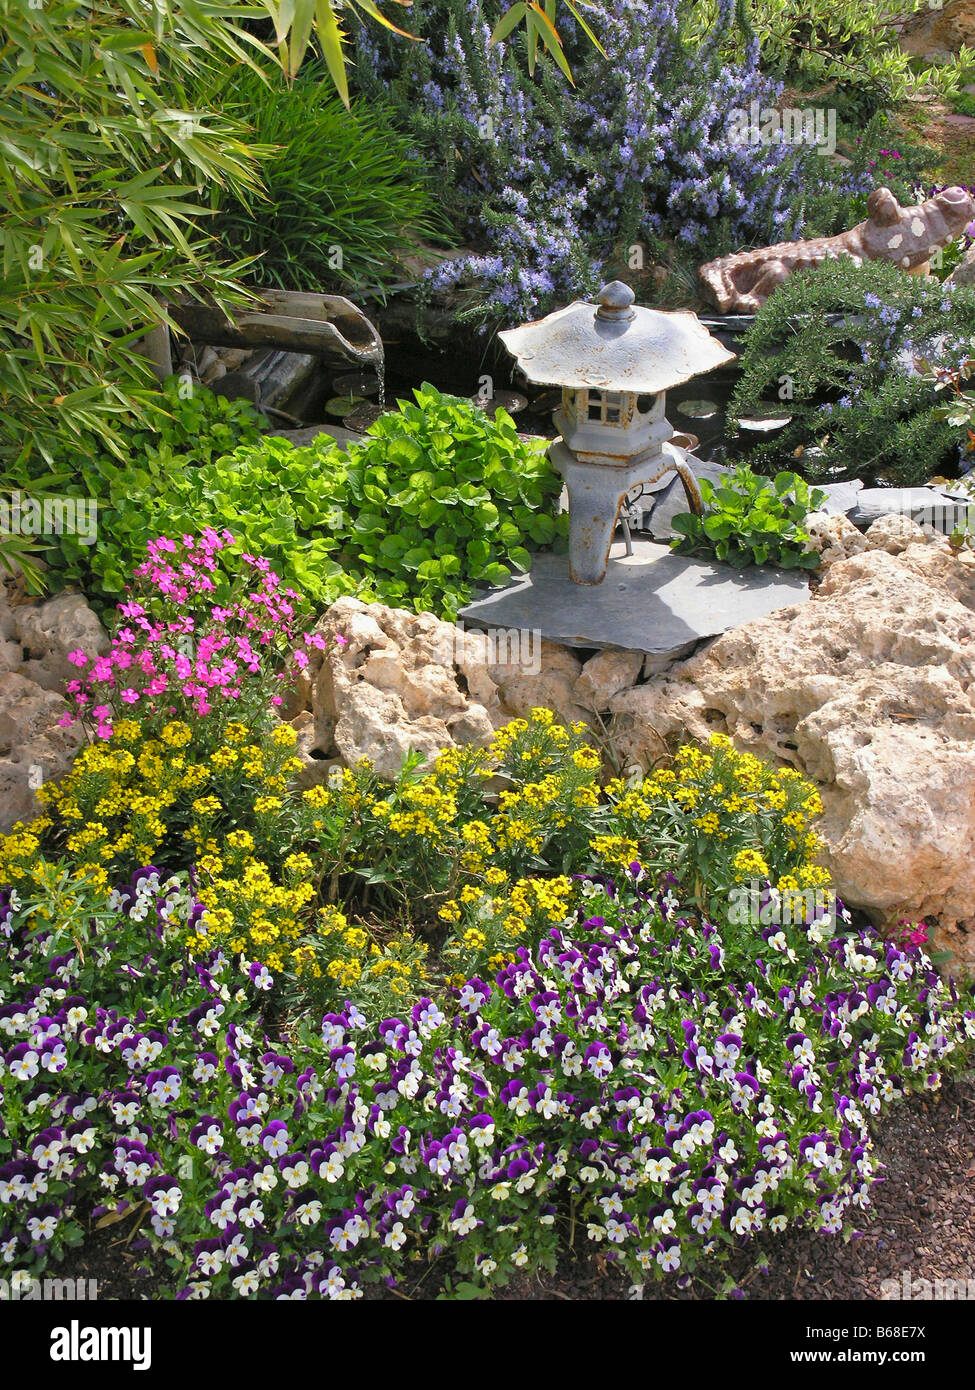 Japanese style in a garden - Stock Image